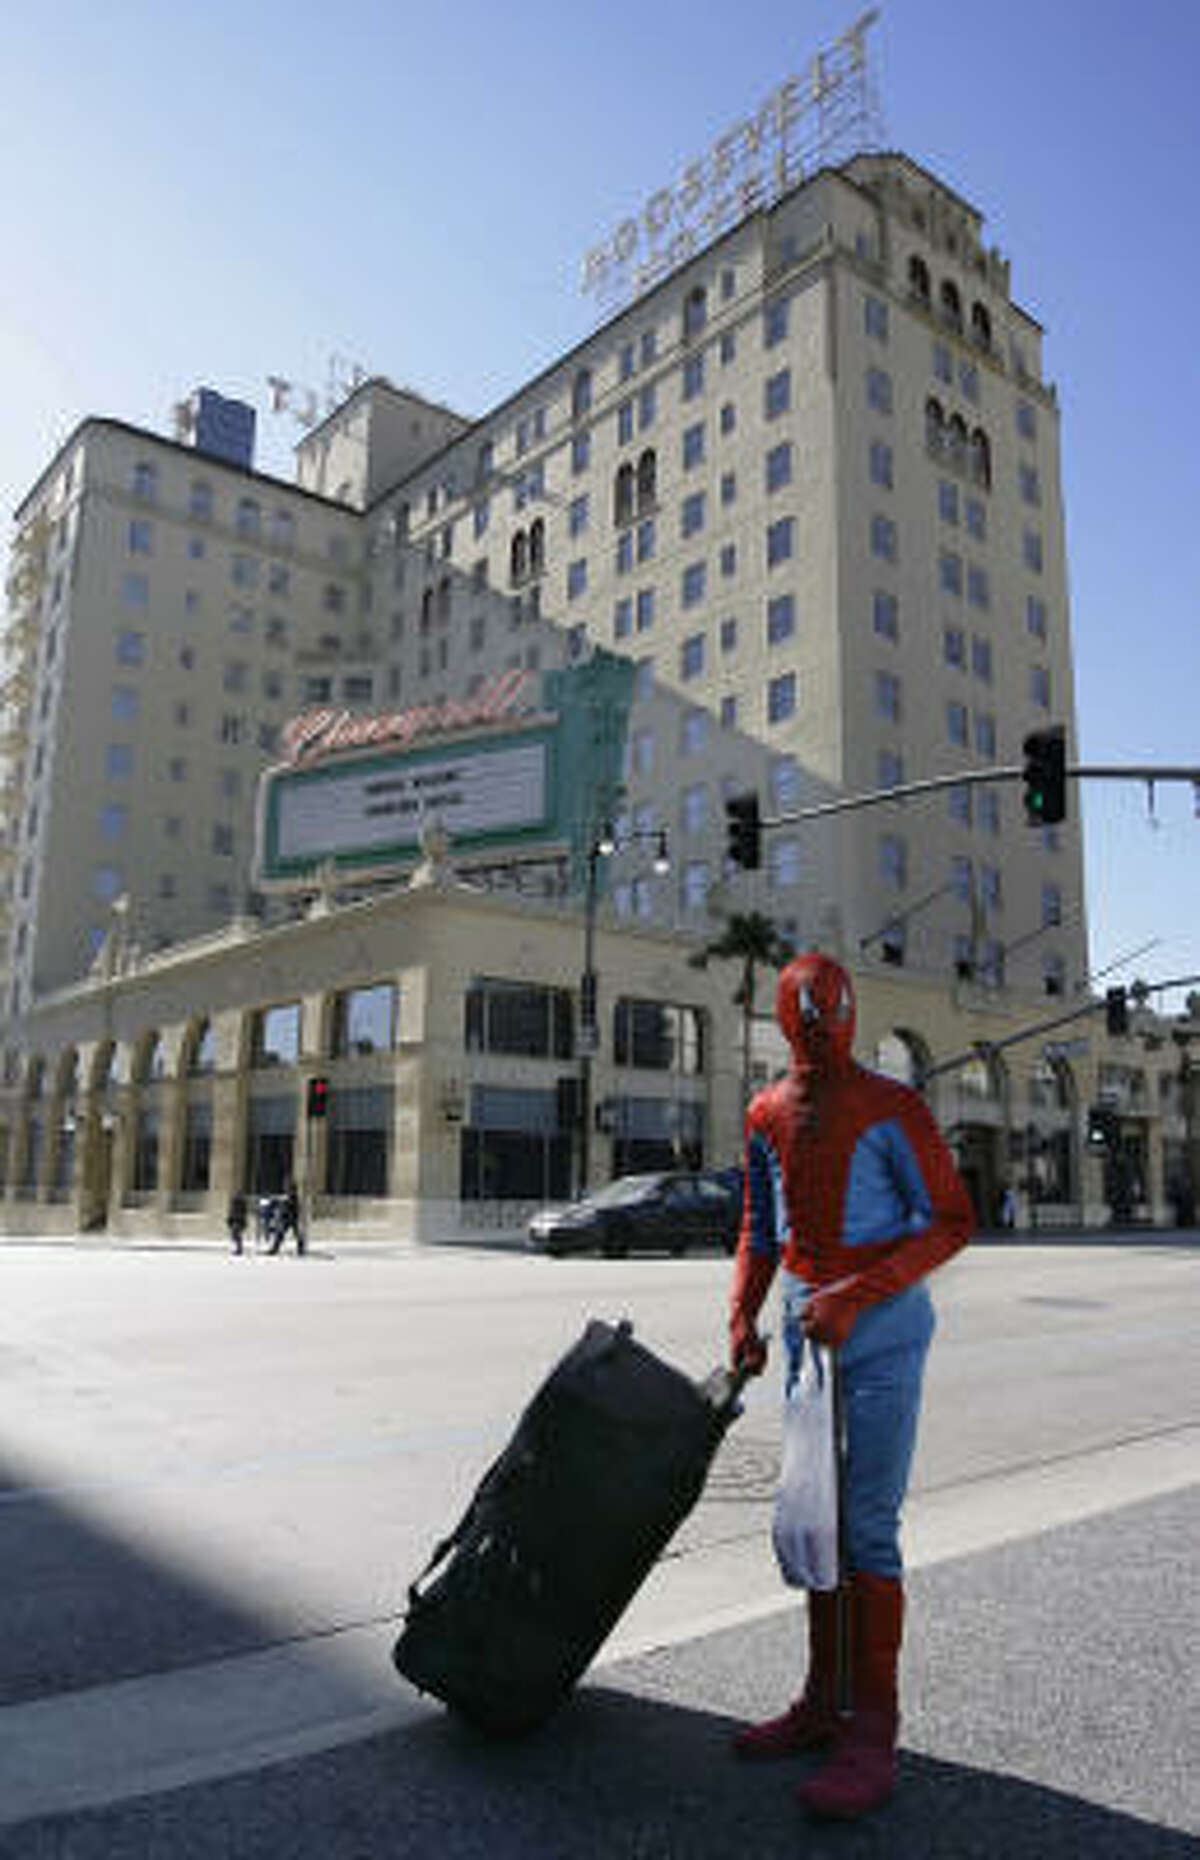 A Spiderman impersonator crosses the street with his luggage near the Roosevelt Hotel in Hollywood.